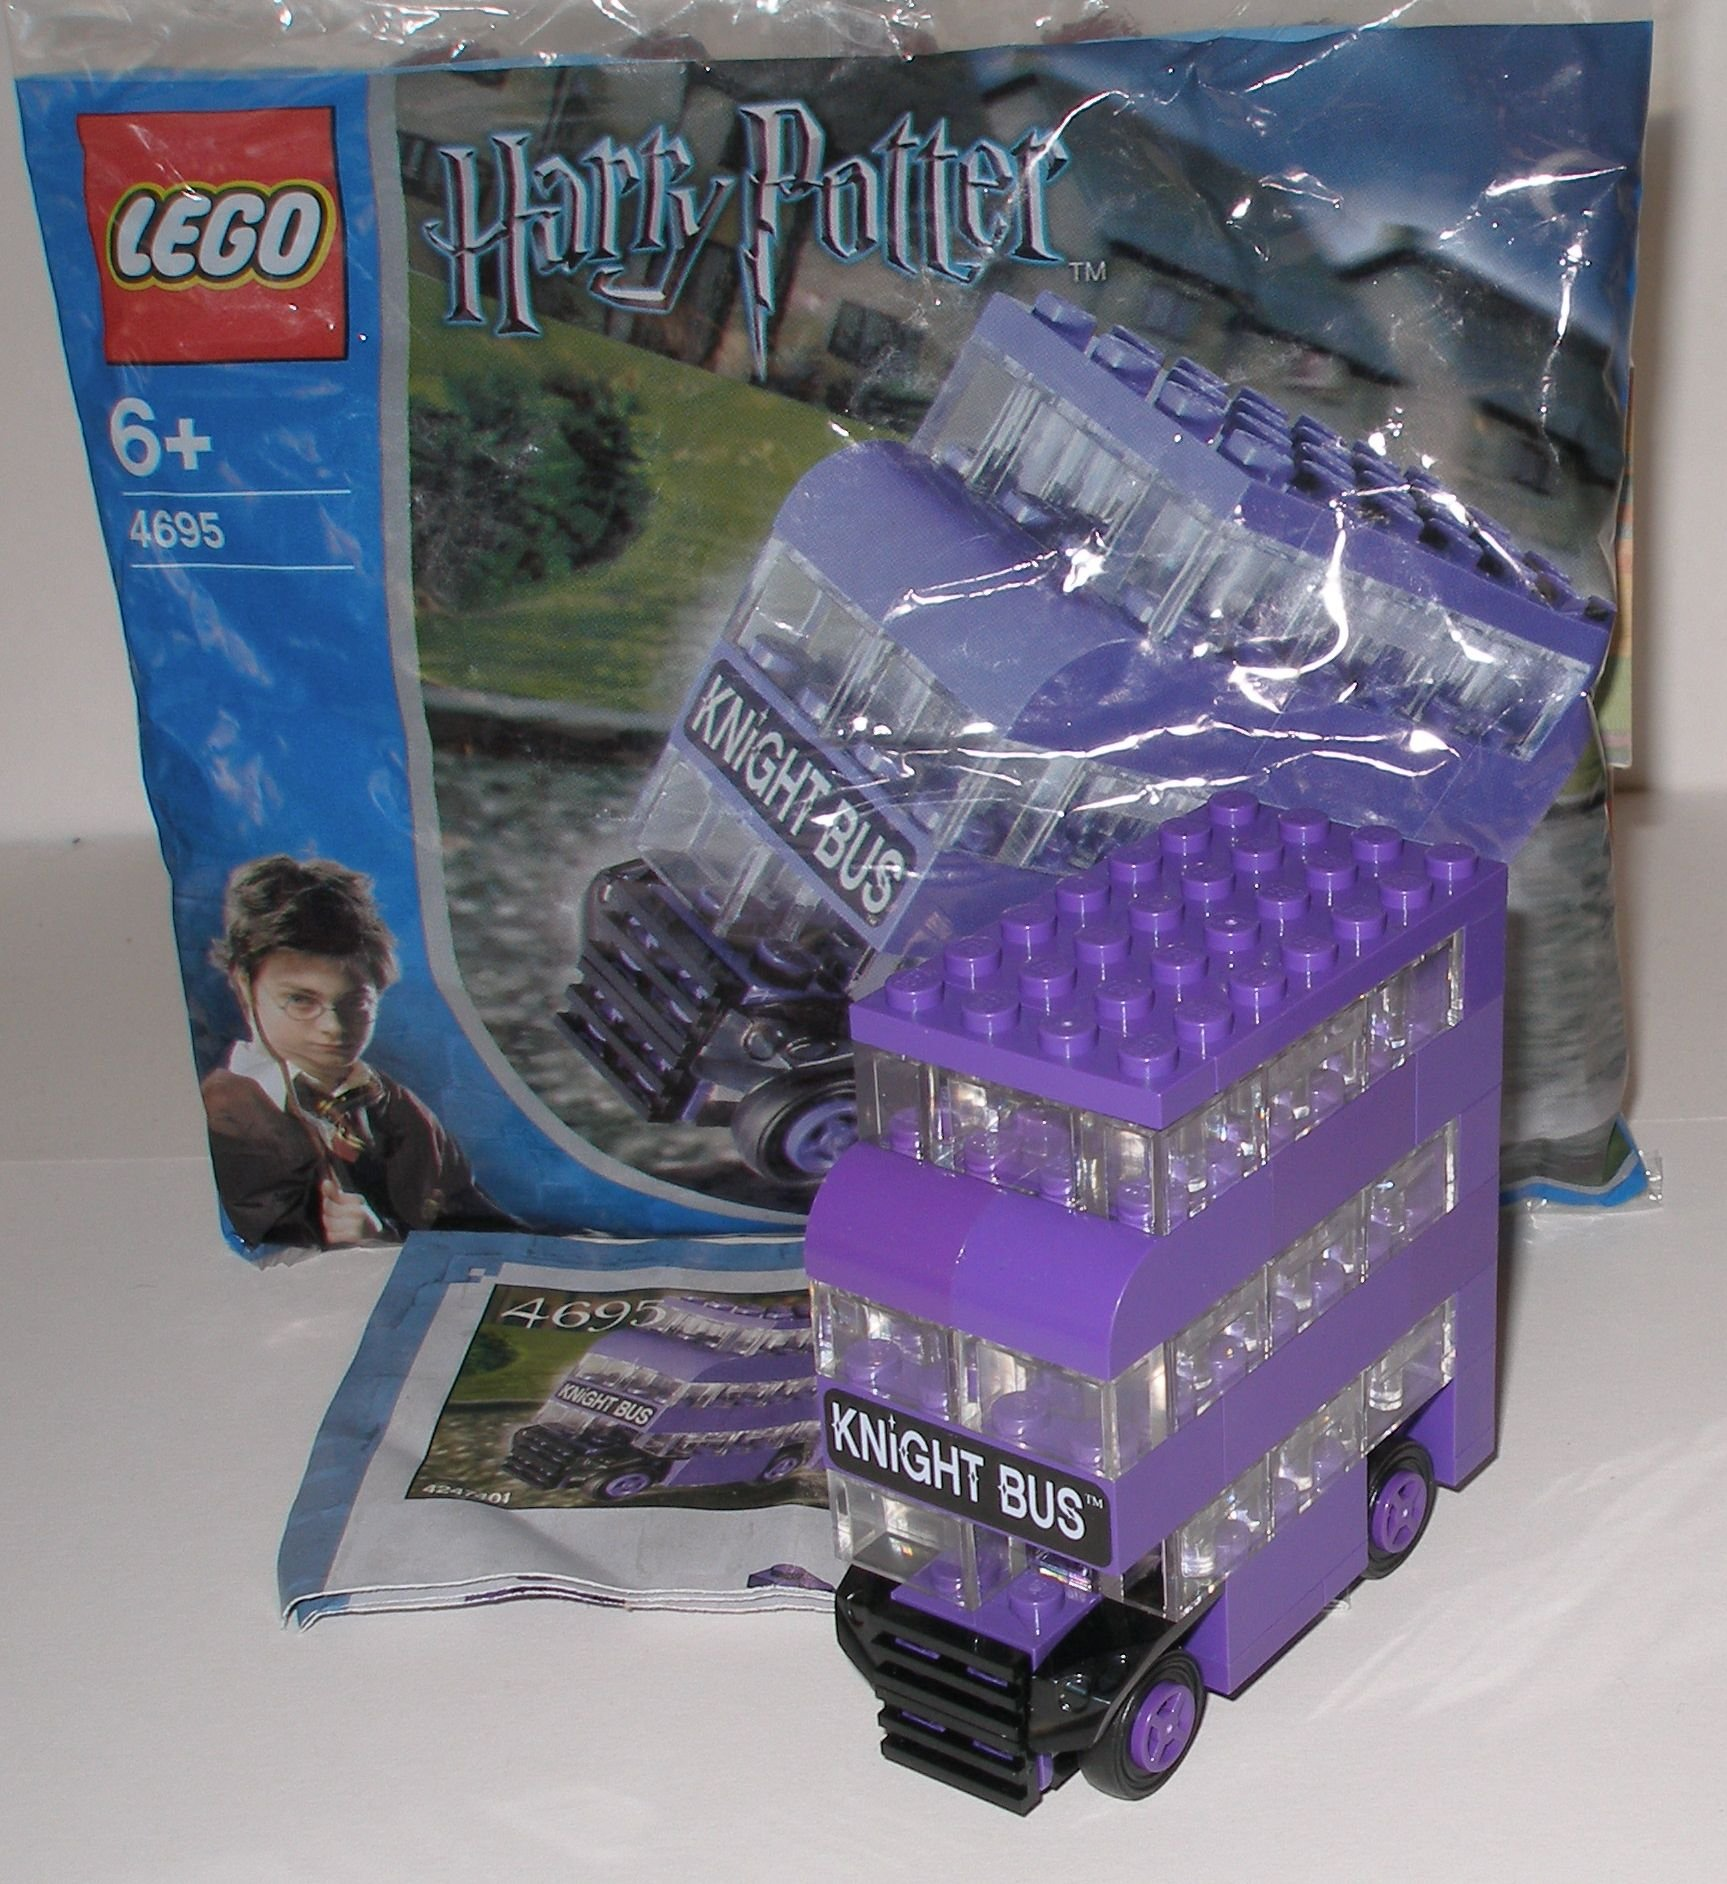 LEGO Harry Potter: Knight Bus (4695) Polybag